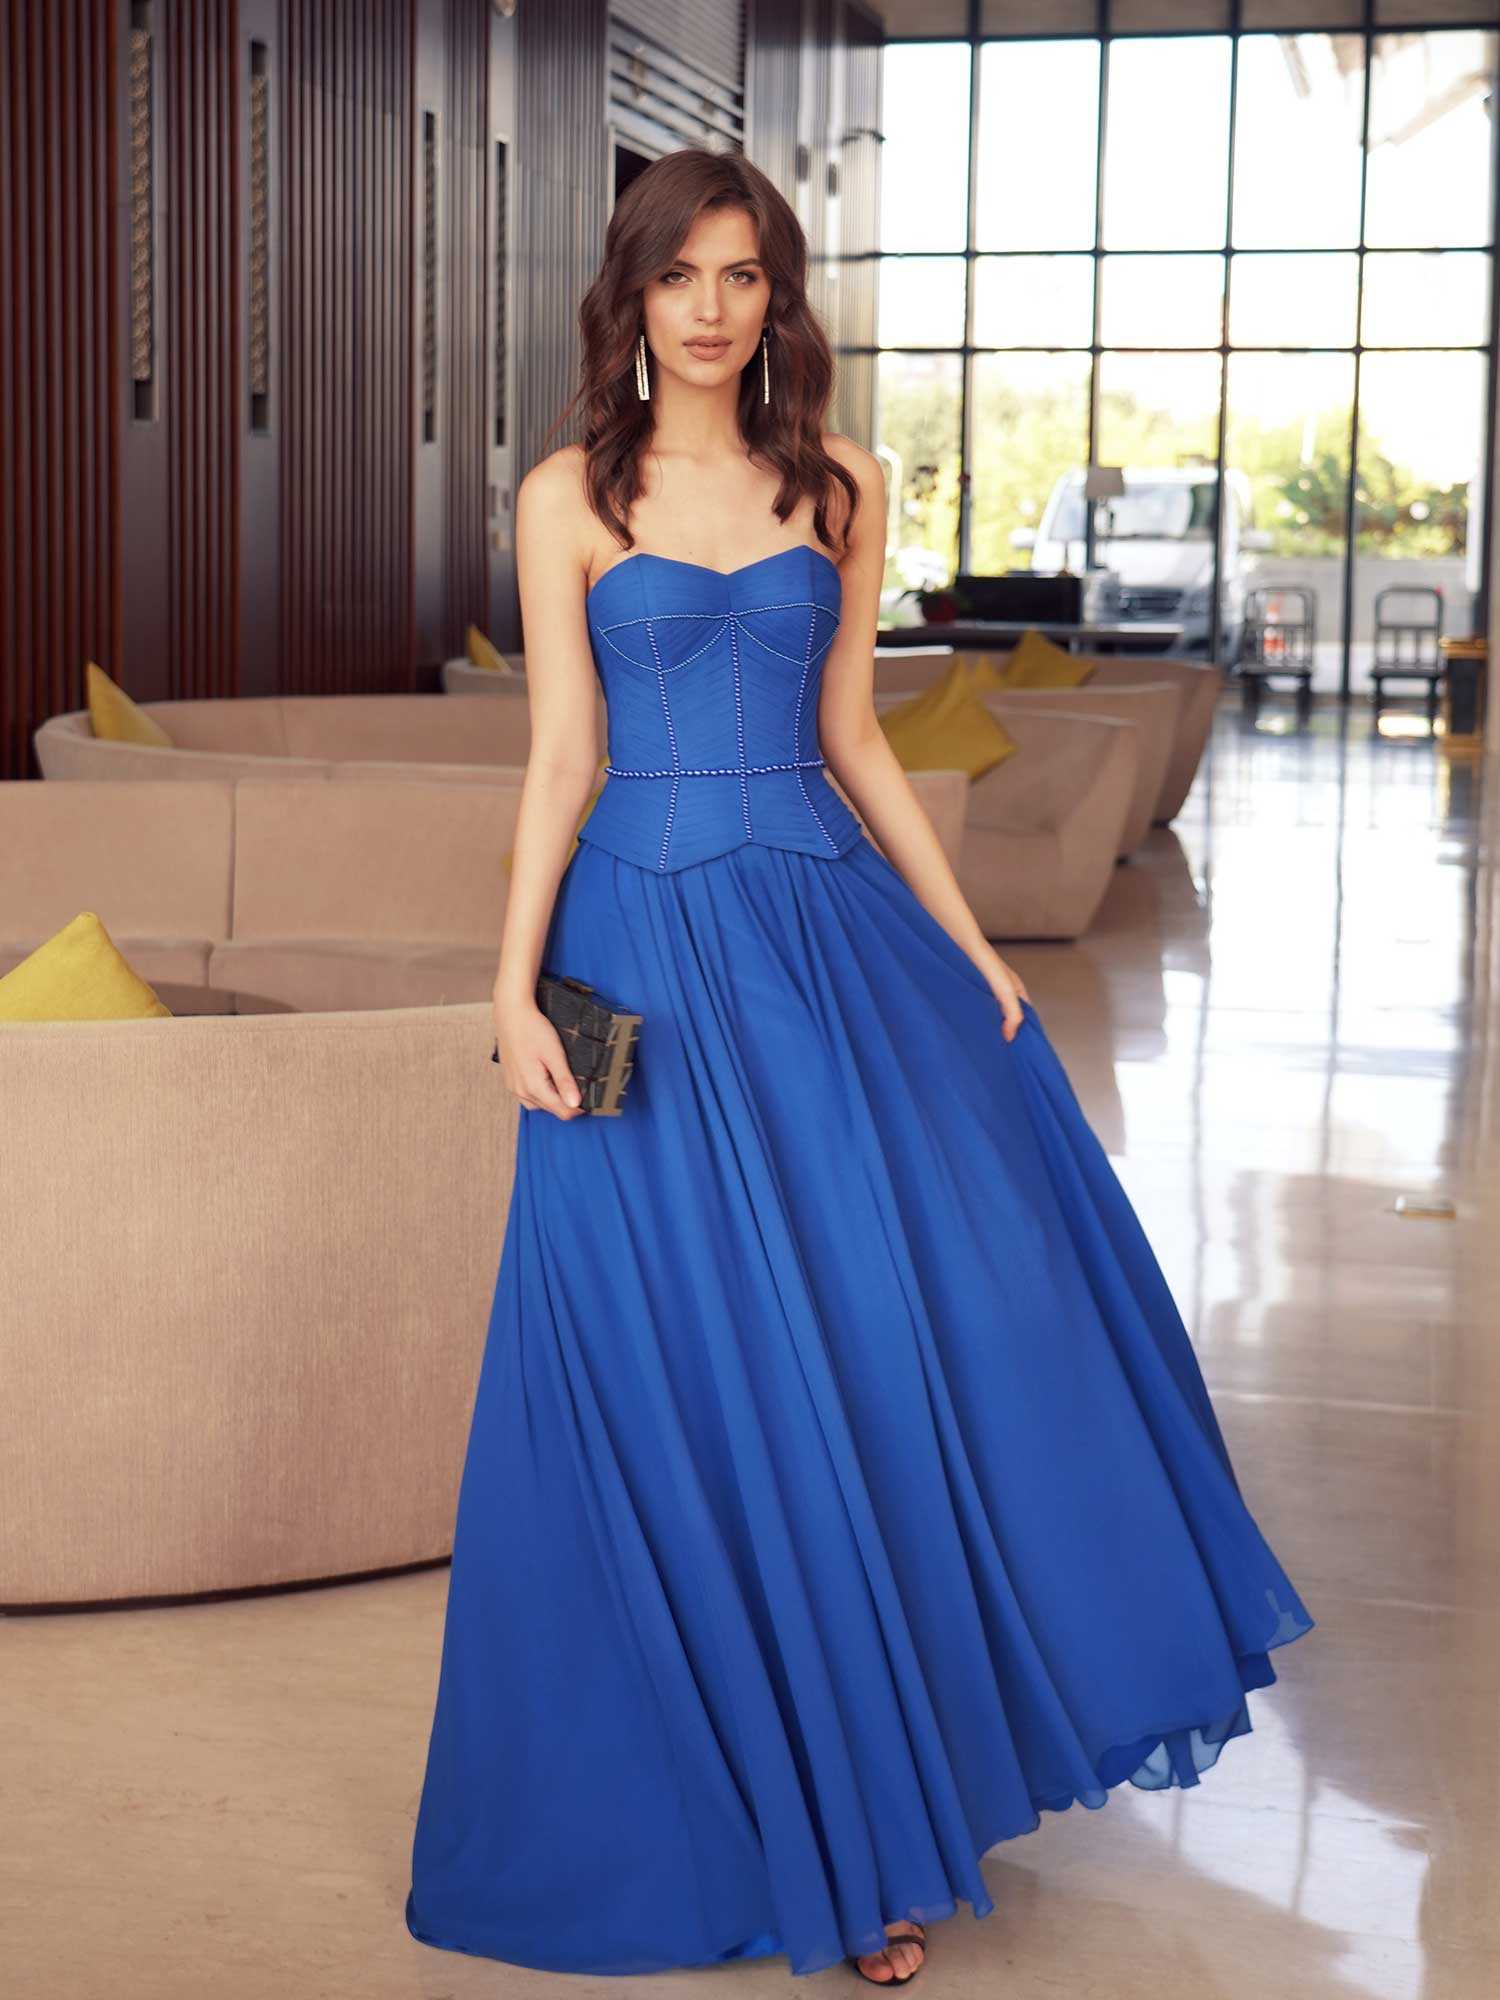 Style #551, formal dress with a flowy skirt and structured bodice, available in cornflower, cherry, black, powder, azure, ivory